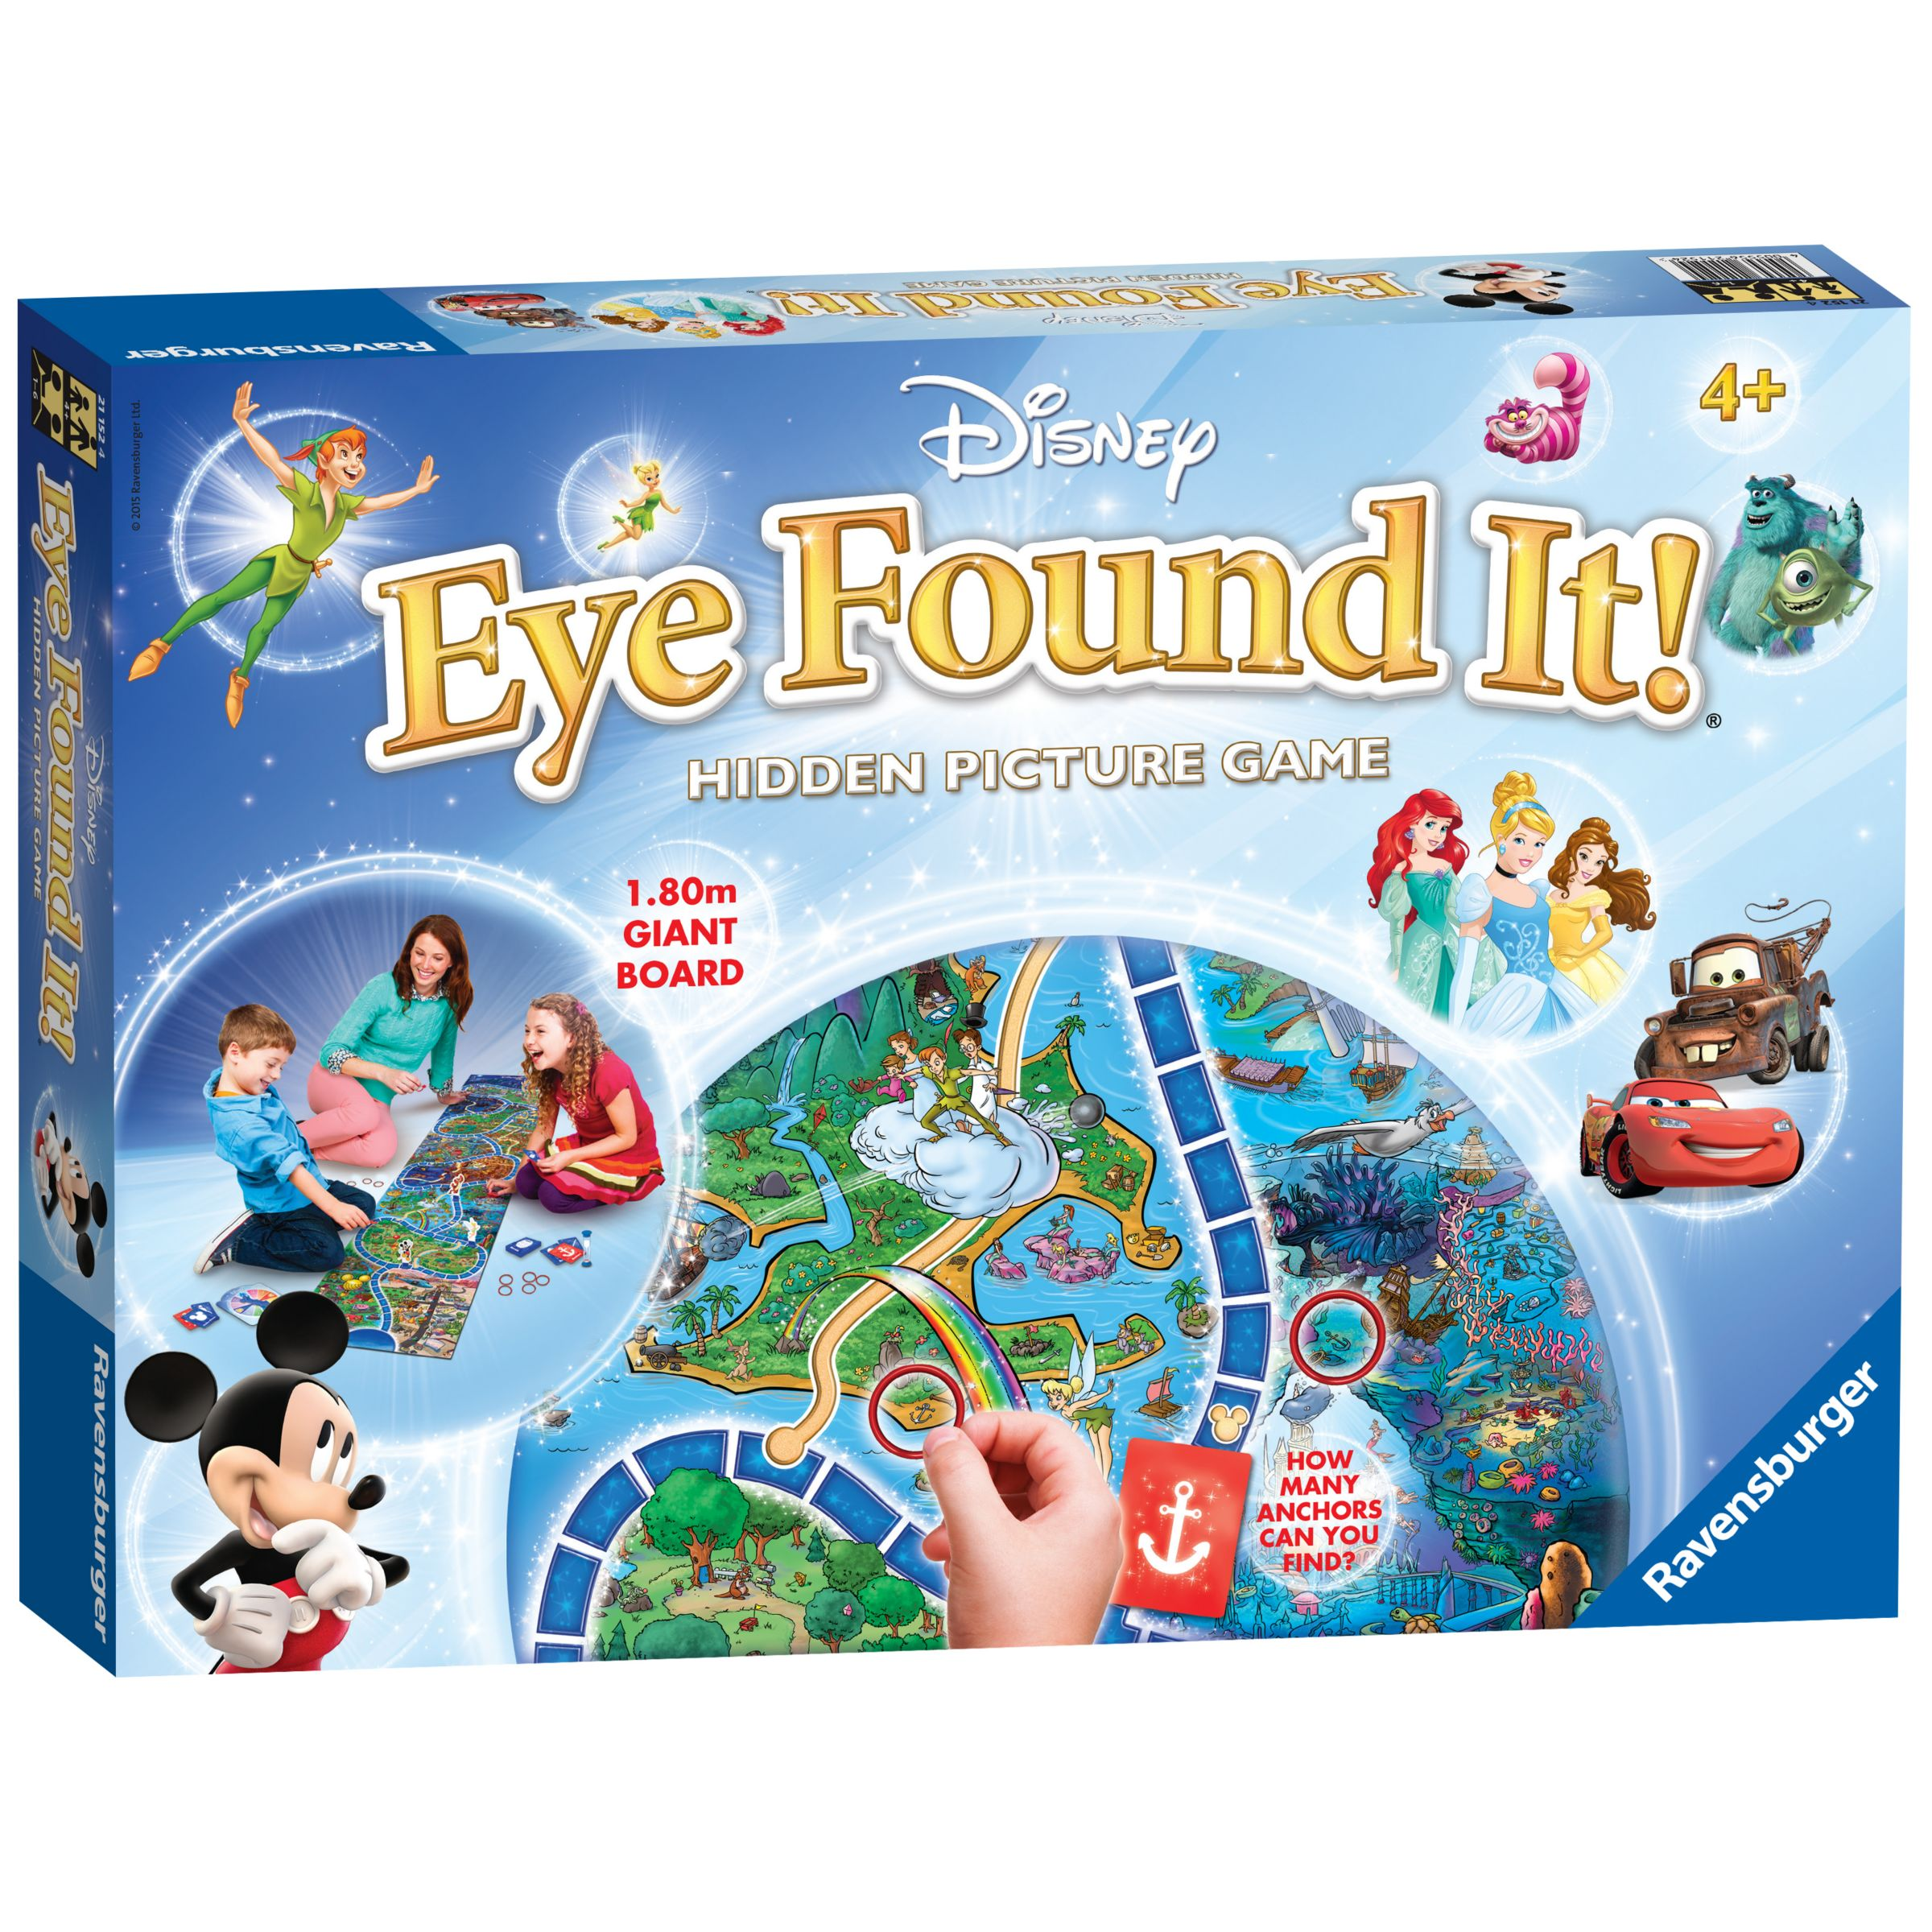 Ravensburger Ravensburger Disney Eye Found It! Game